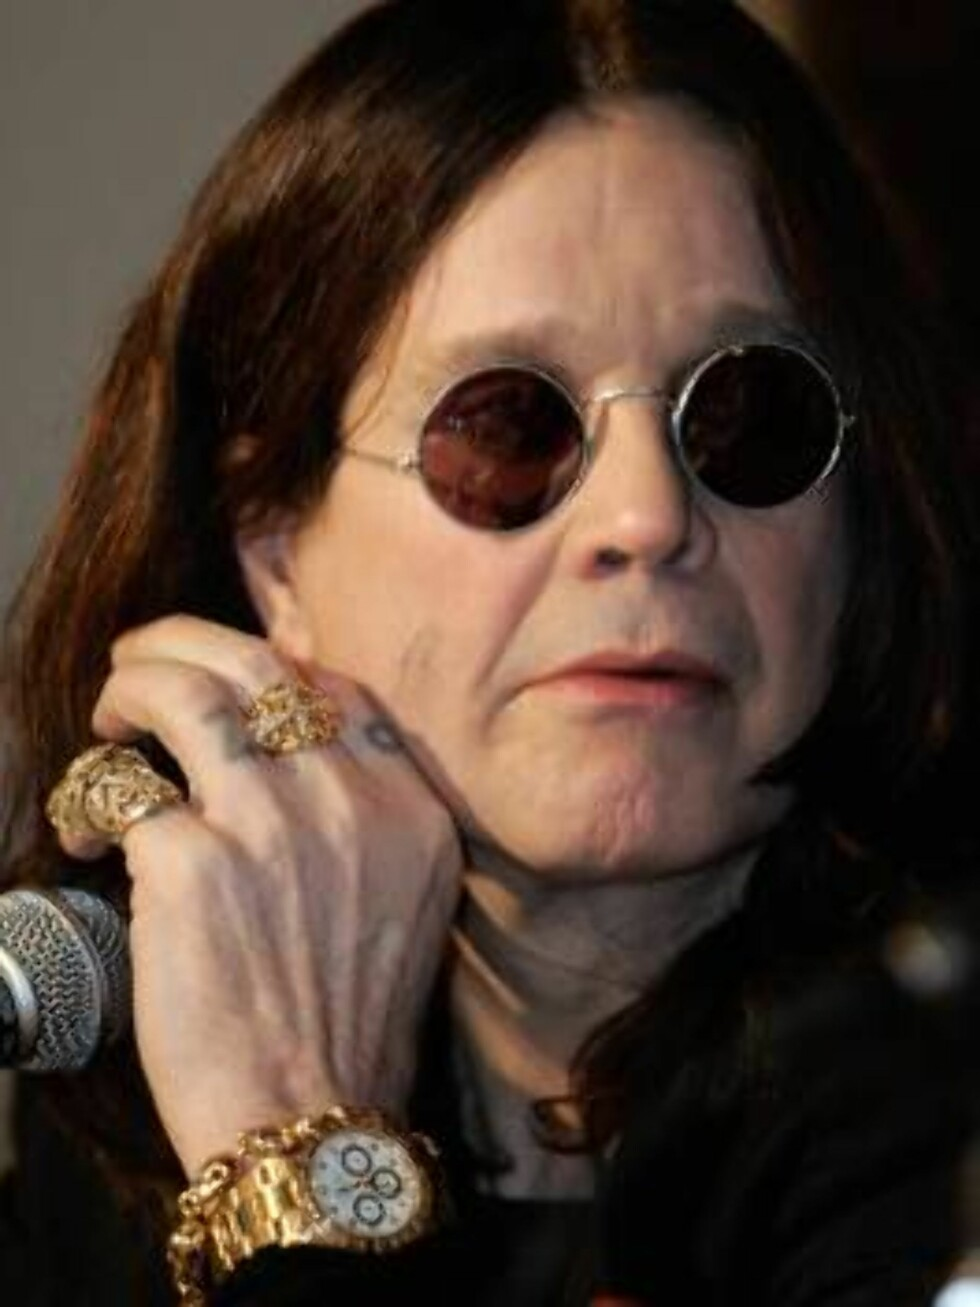 Former Black Sabbath member and hard rock musician Ozzy Osbourne speaks at a press conference in Los Angeles 06 February 2007. Osbourne announced that Ozzfest 2007, the 25-day music festival that tours the country, will be free. The music festival created Foto: Scanpix